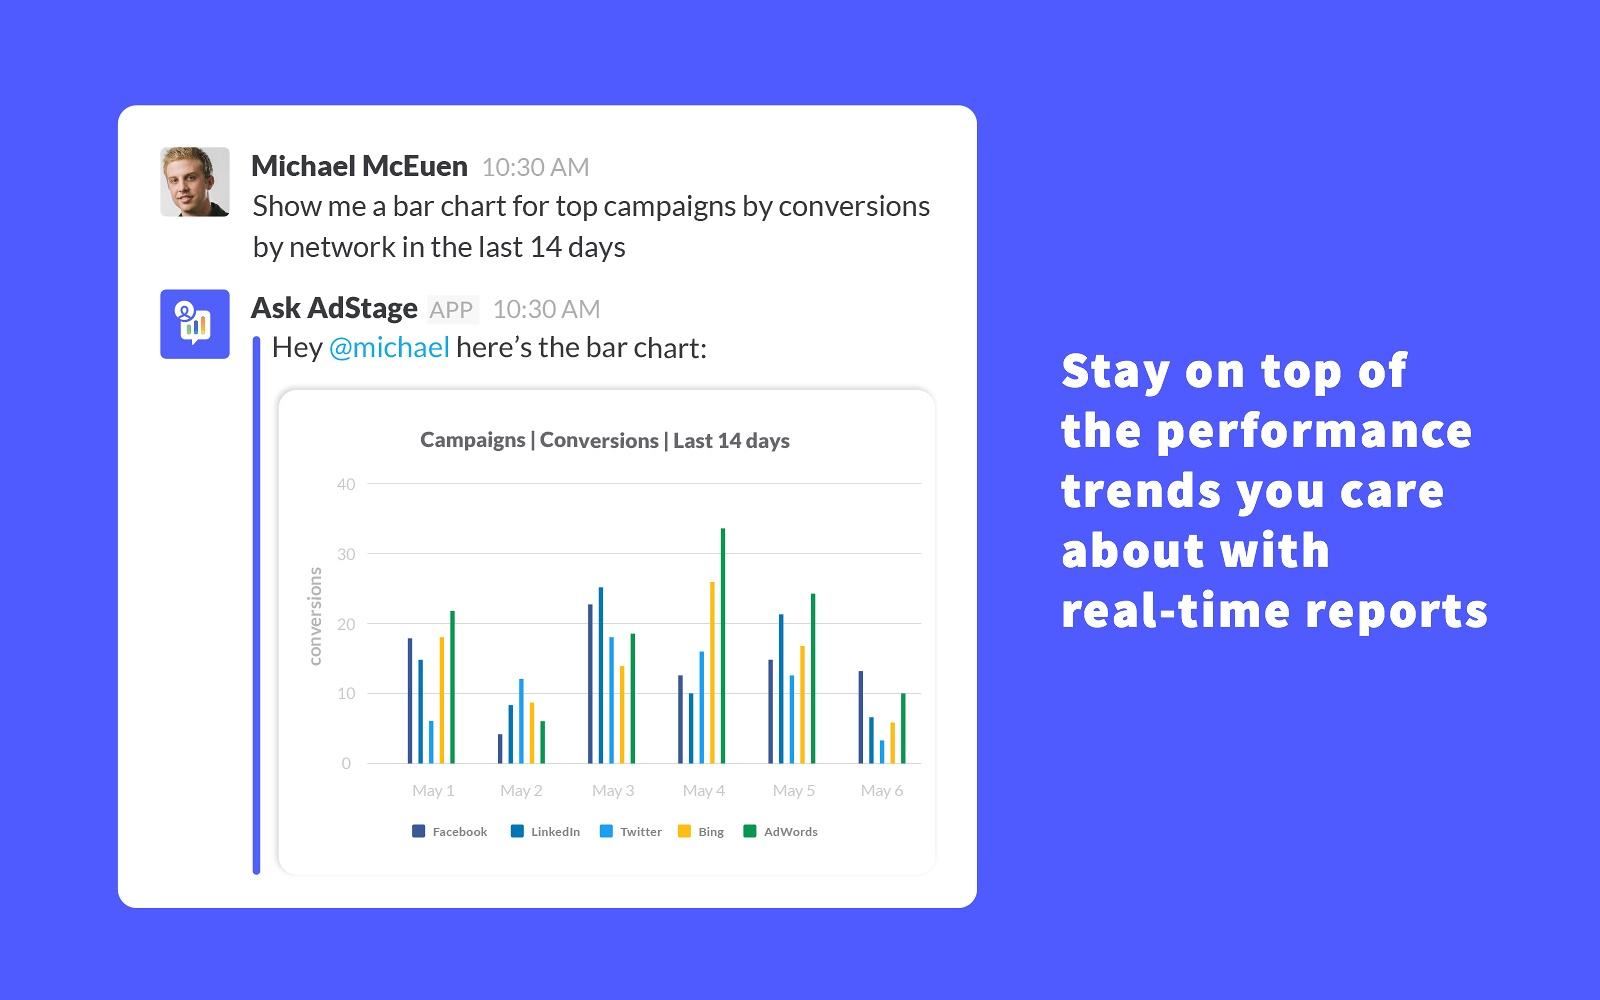 Apply advanced filters to hone in on the metrics you care about